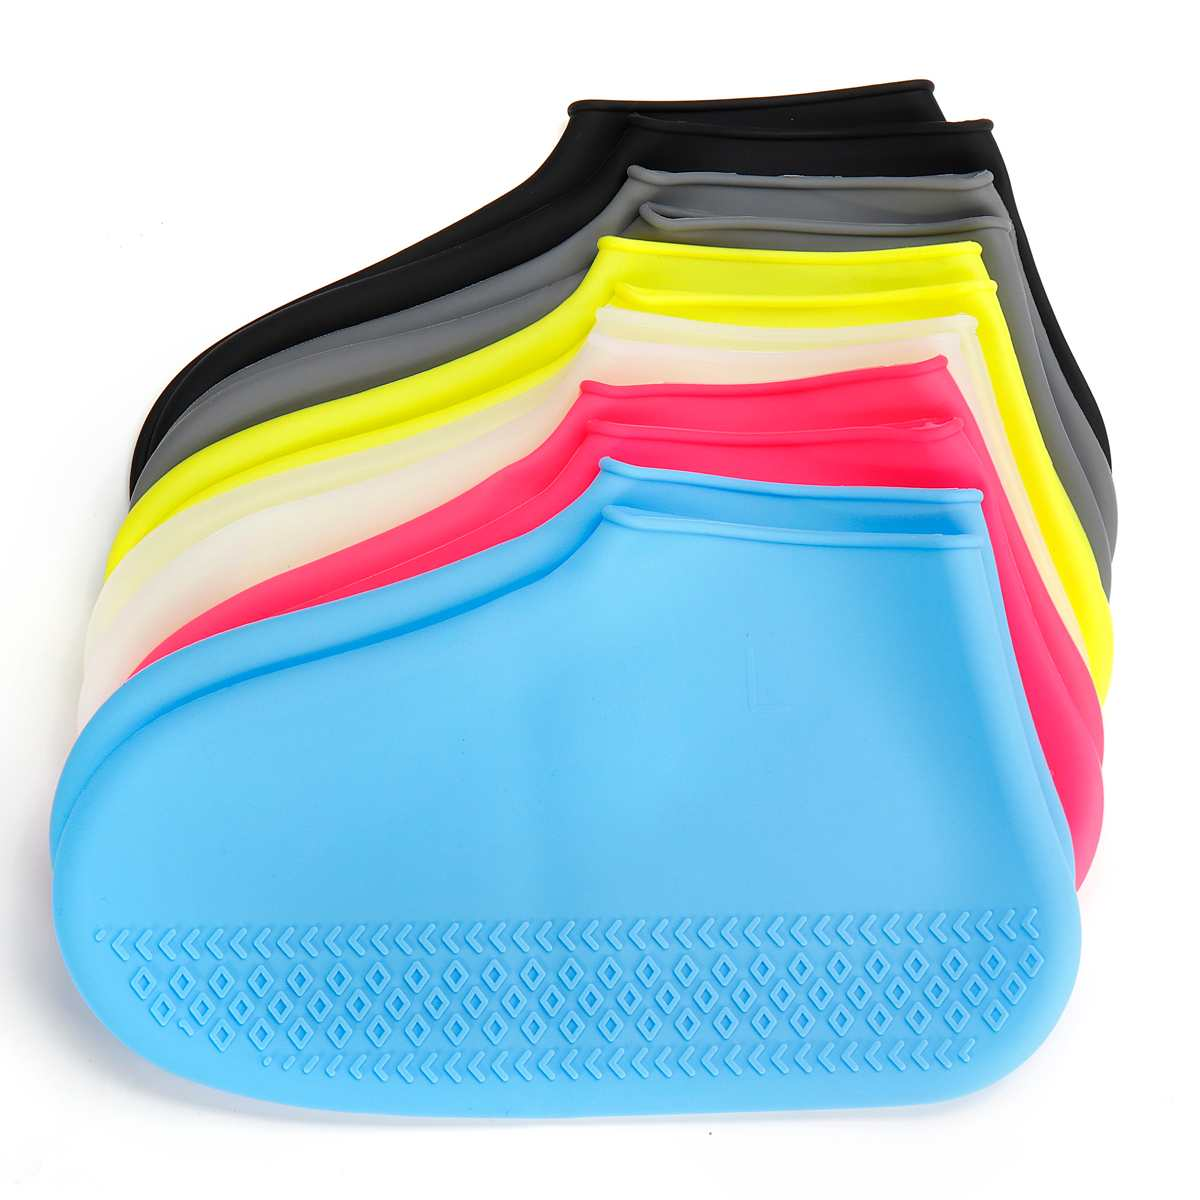 1 Pair Reusable Silicone Shoe Cover L Waterproof Rain Shoes Covers Outdoor Camping Slip-resistant Rubber Rain Boot Overshoes